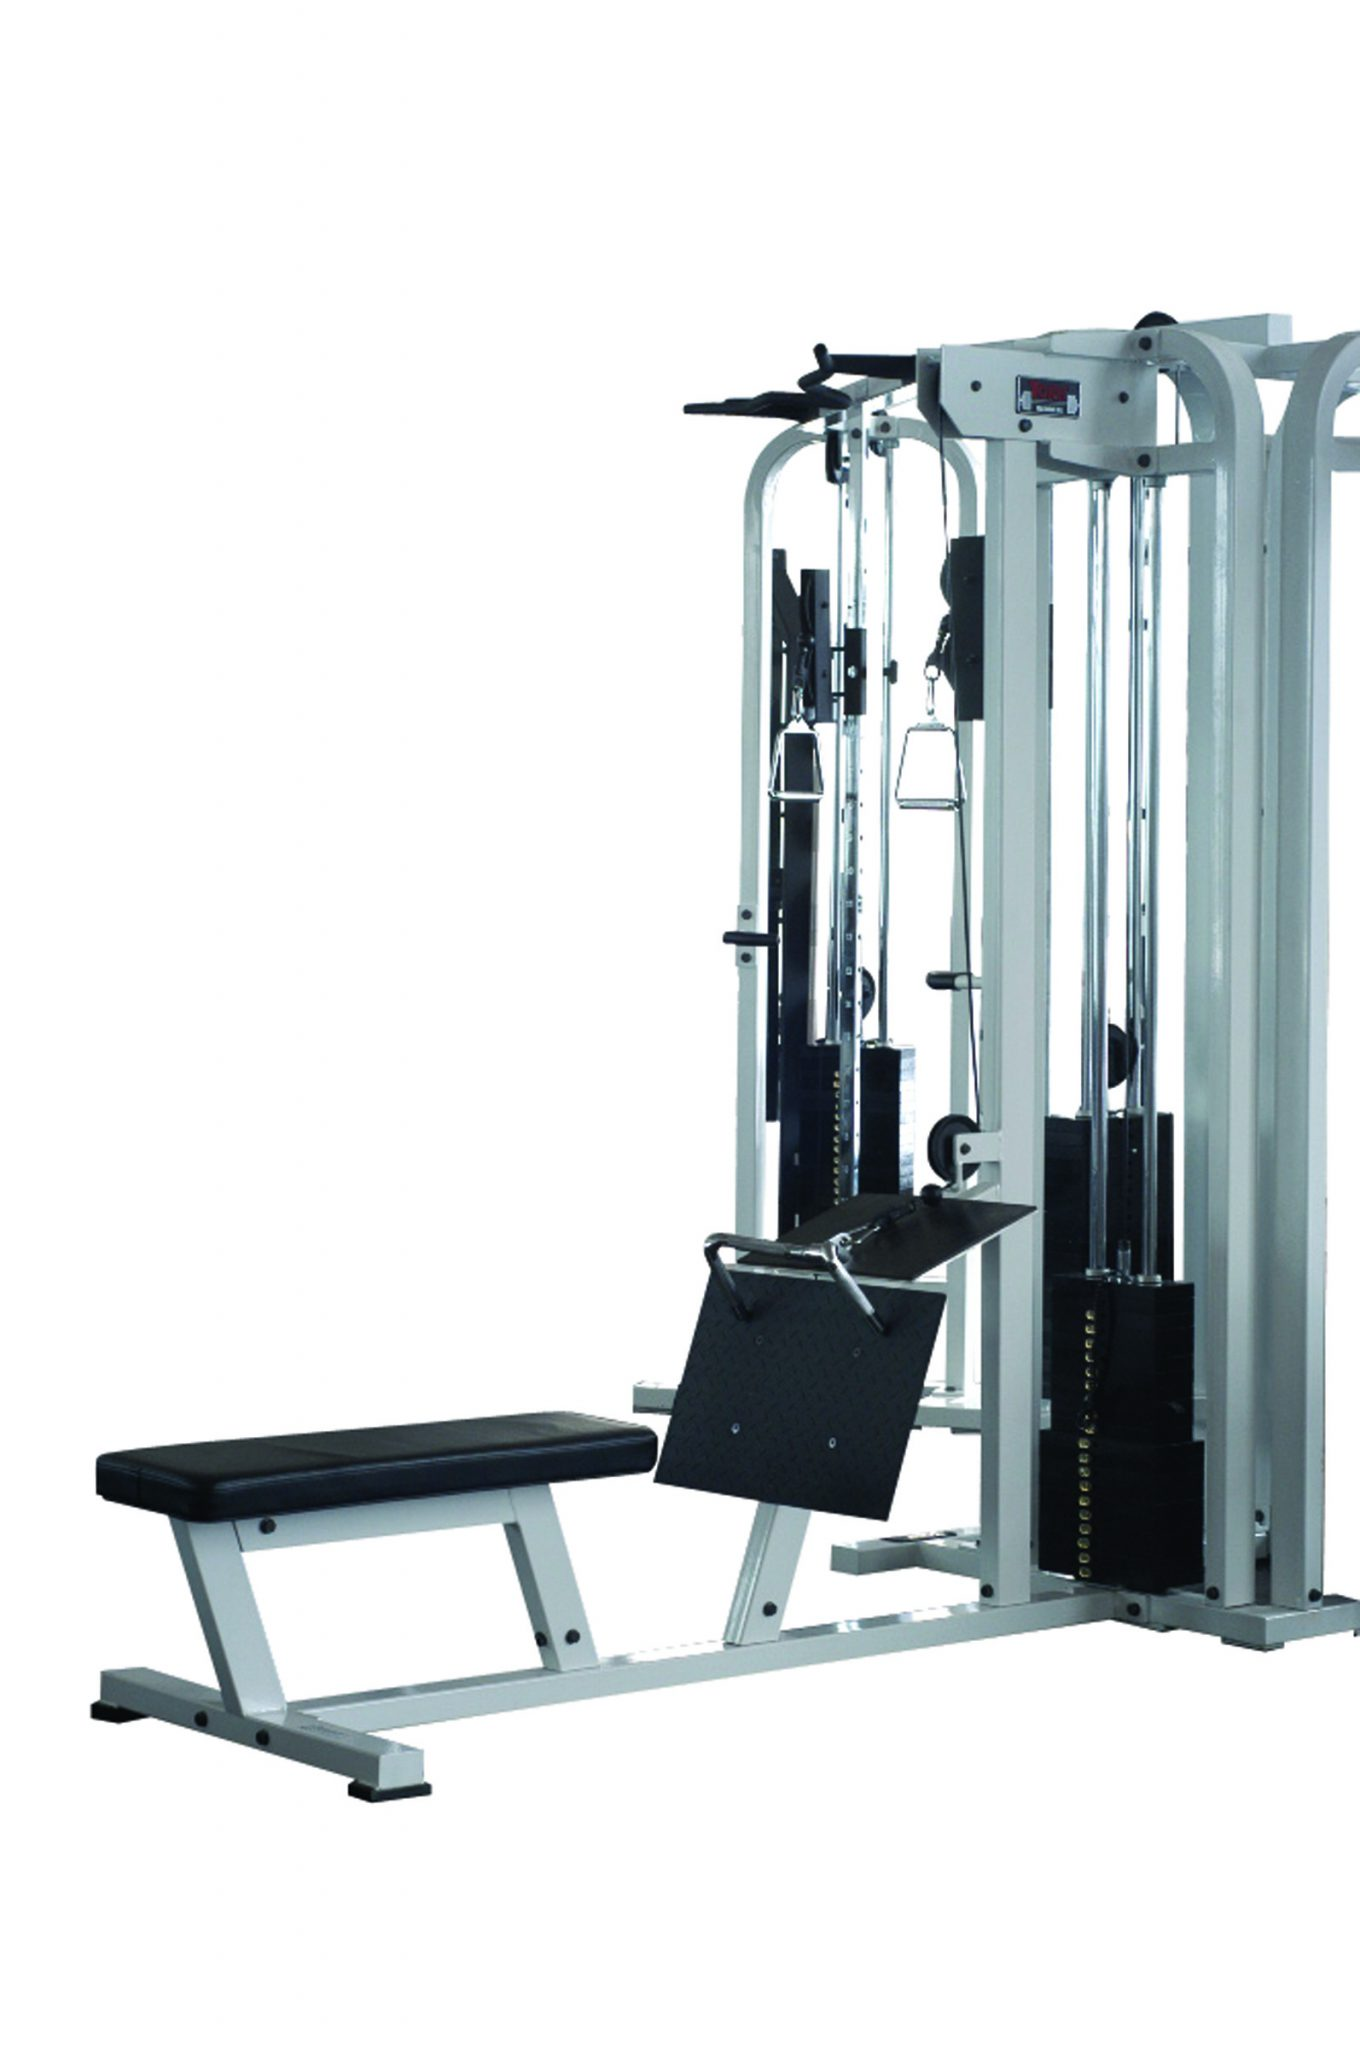 Low Seated Row Machine Commercial Gym Equipment York